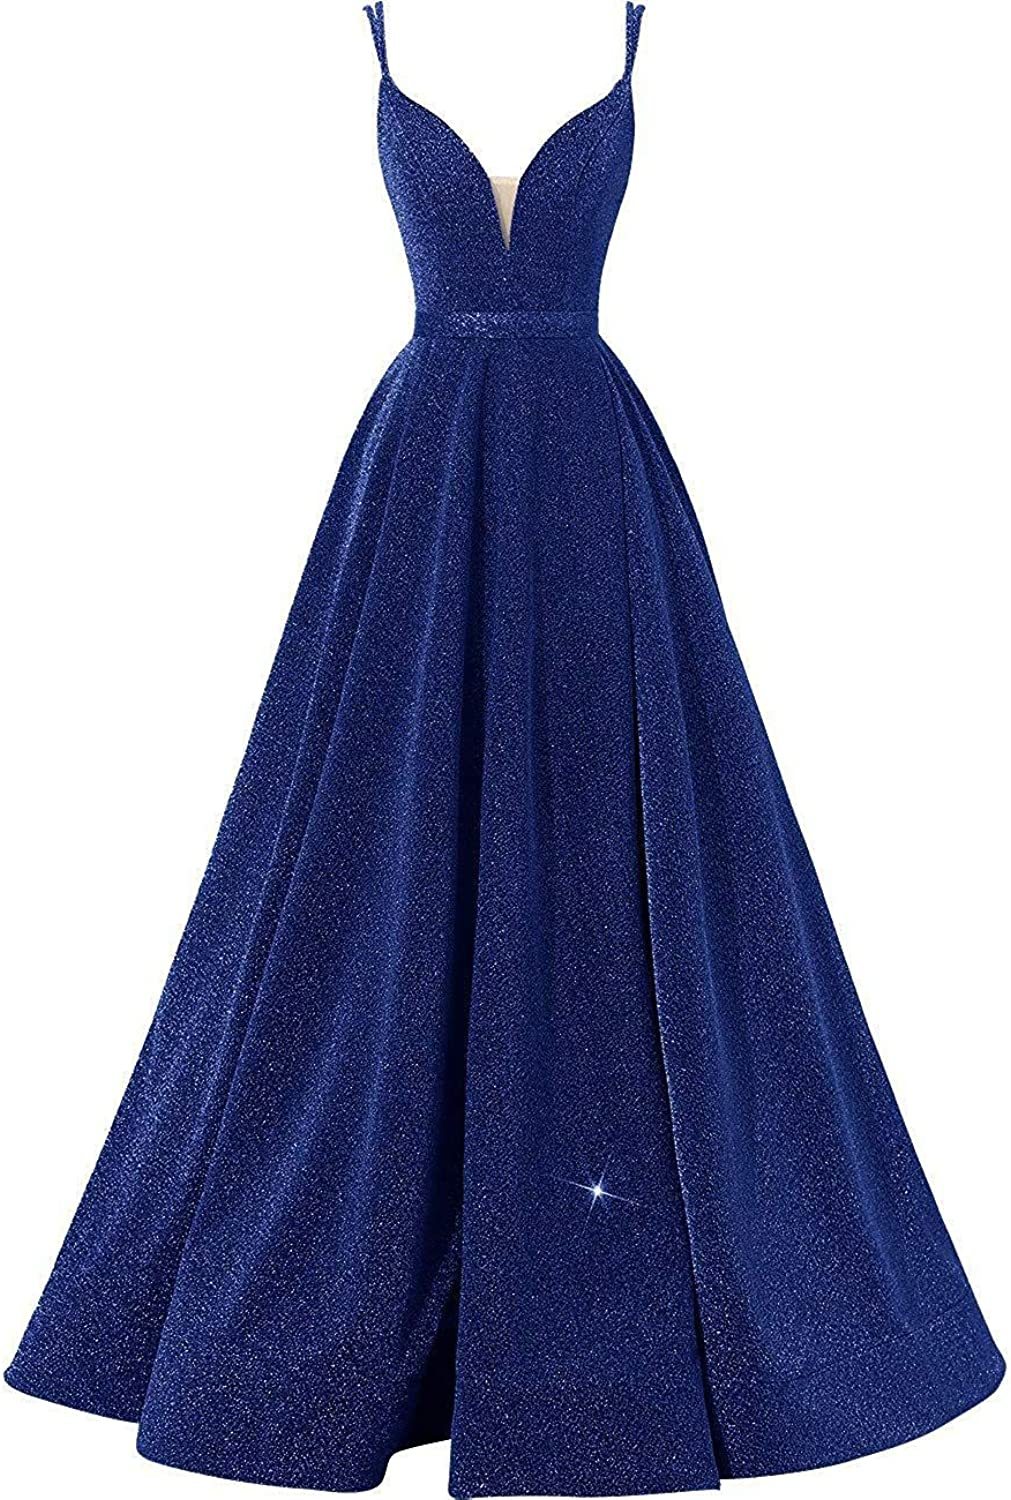 RYANTH Women's Glittery VNeck Prom Dresses Side Slit Evening Formal Gowns A Line RPM07